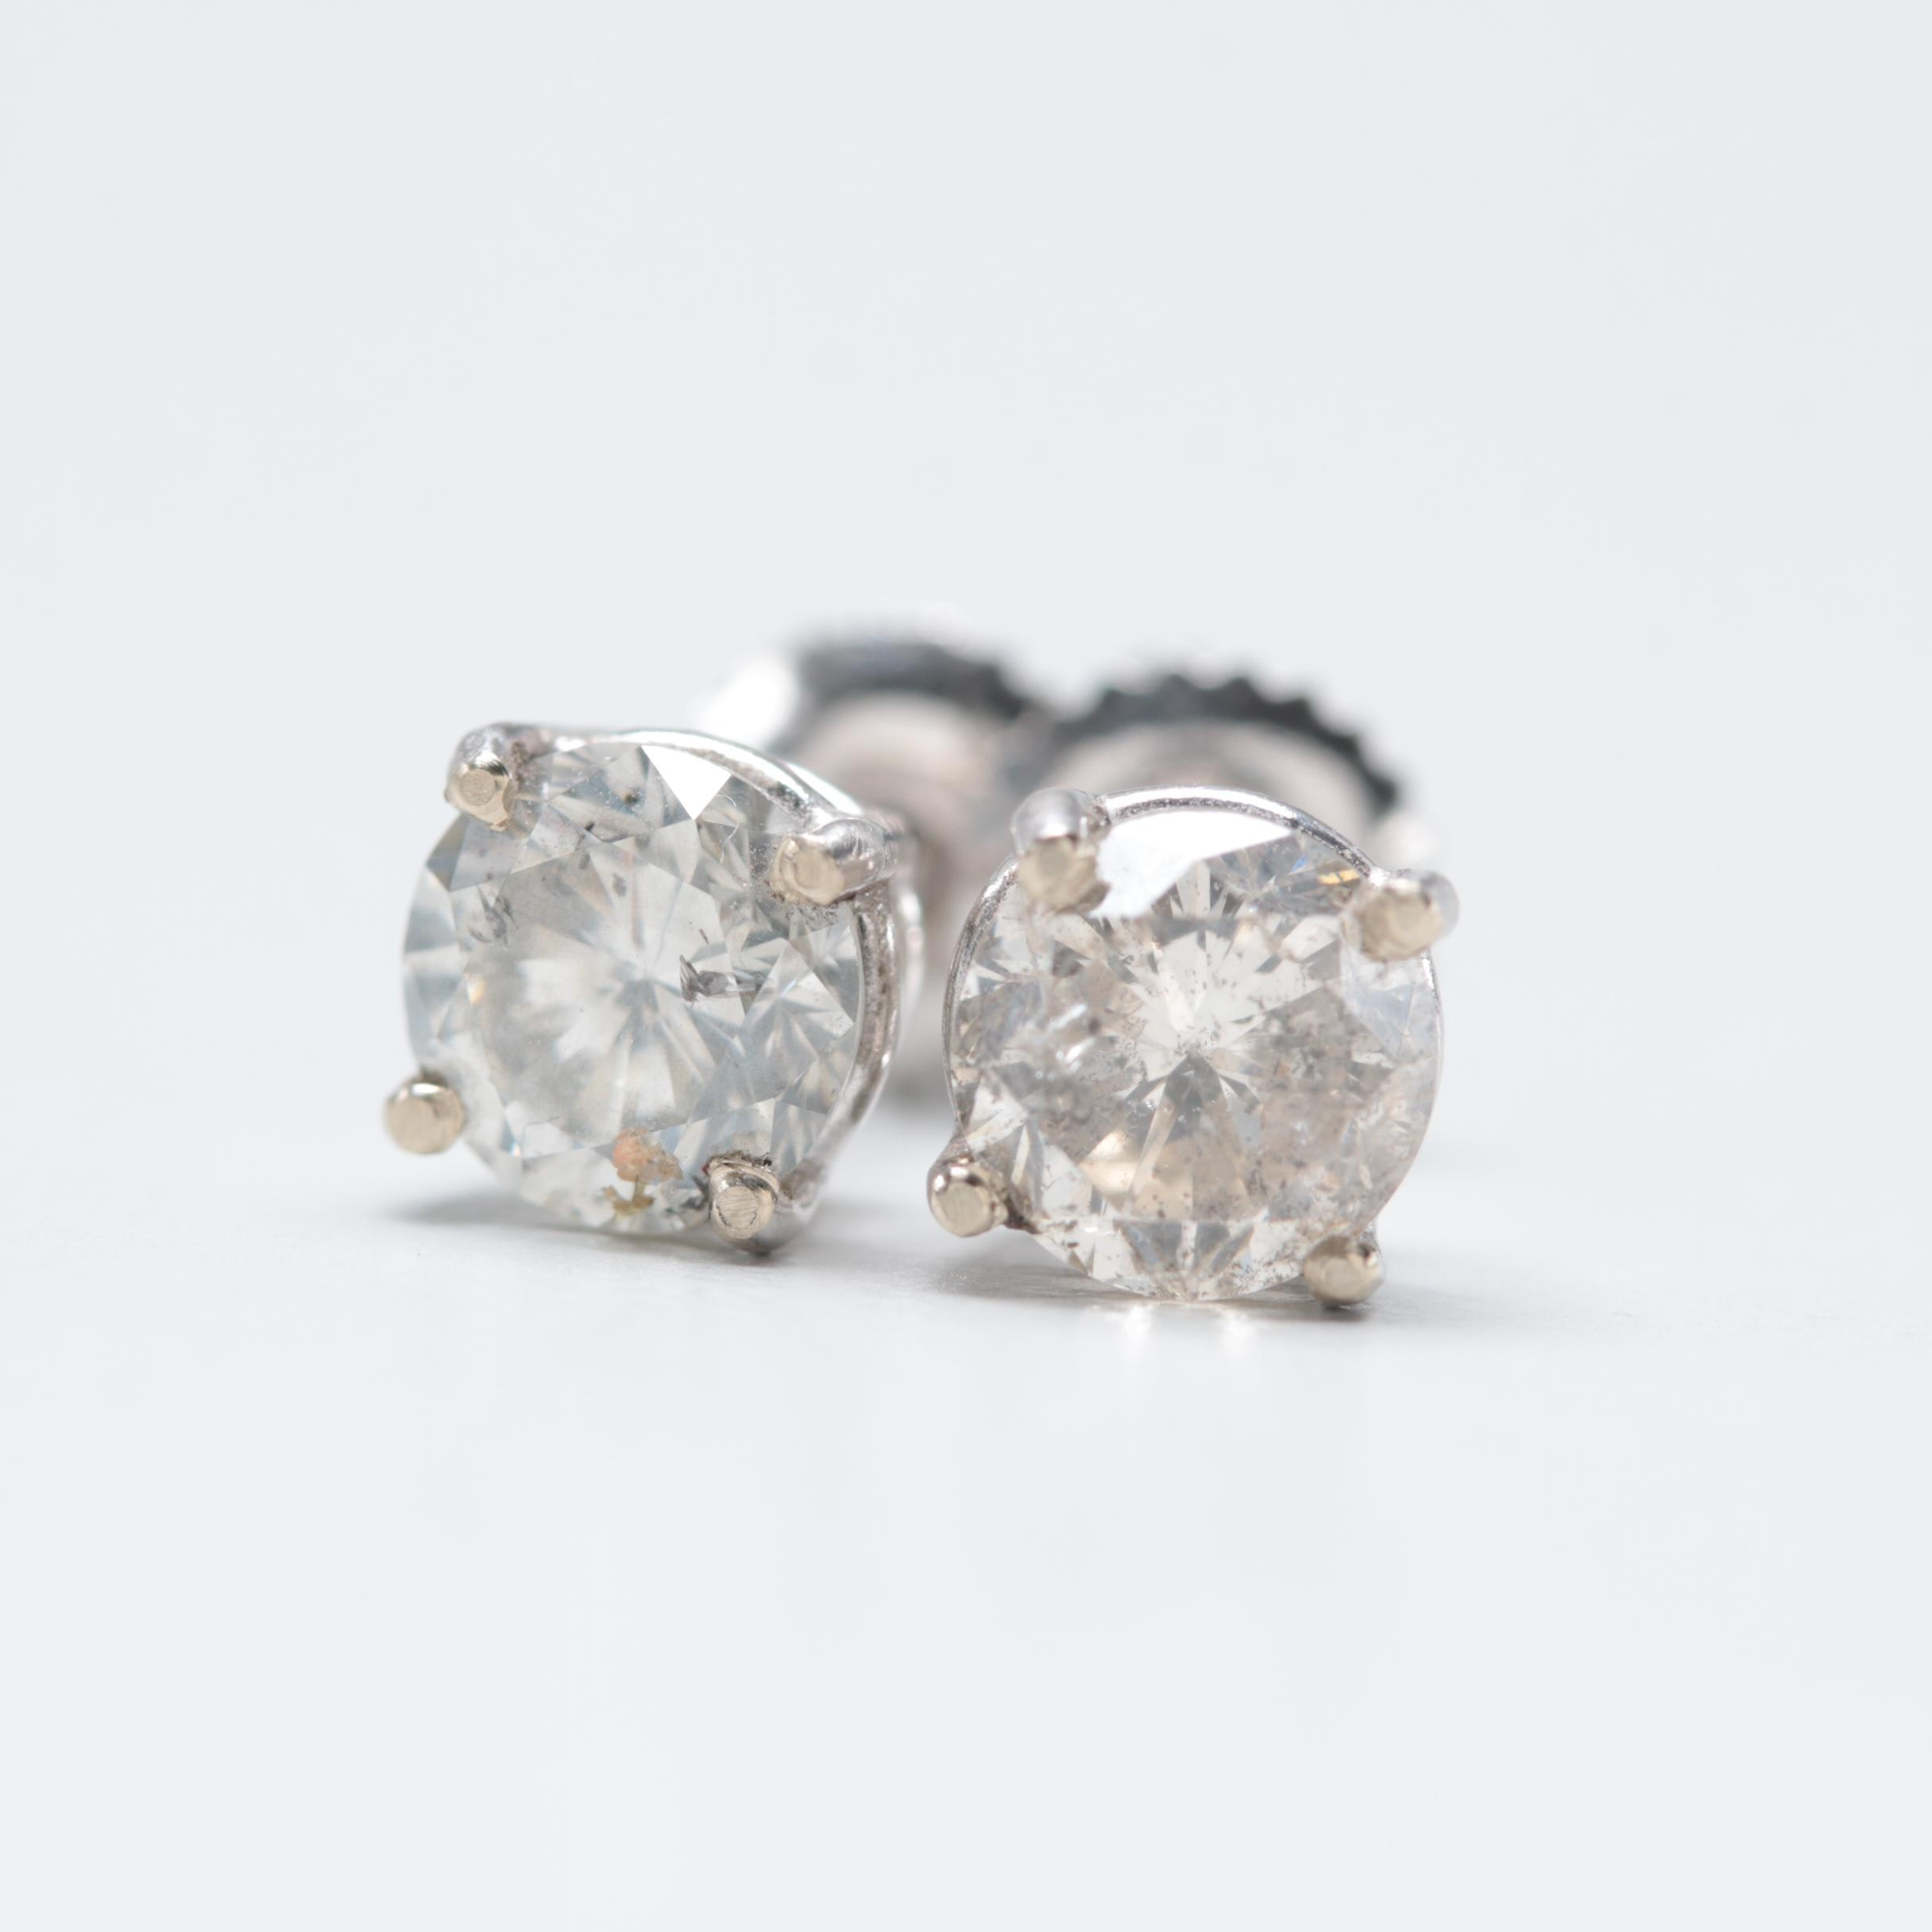 18K White Gold 1.51 CTW Diamond Stud Earrings